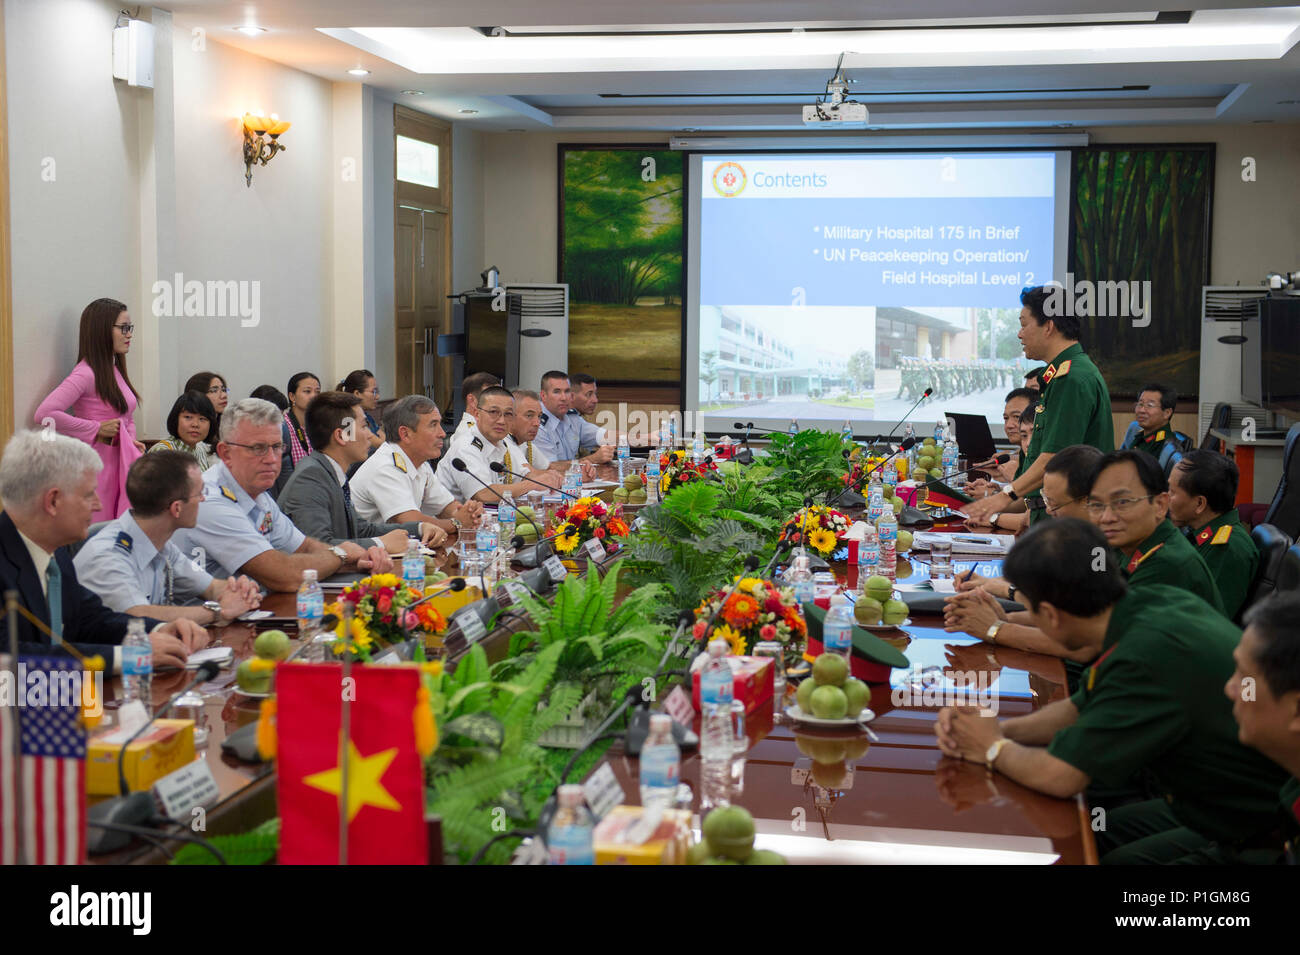 161027-N-DX698-073 HO CHI MINH CITY, Vietnam (Oct  27, 2016